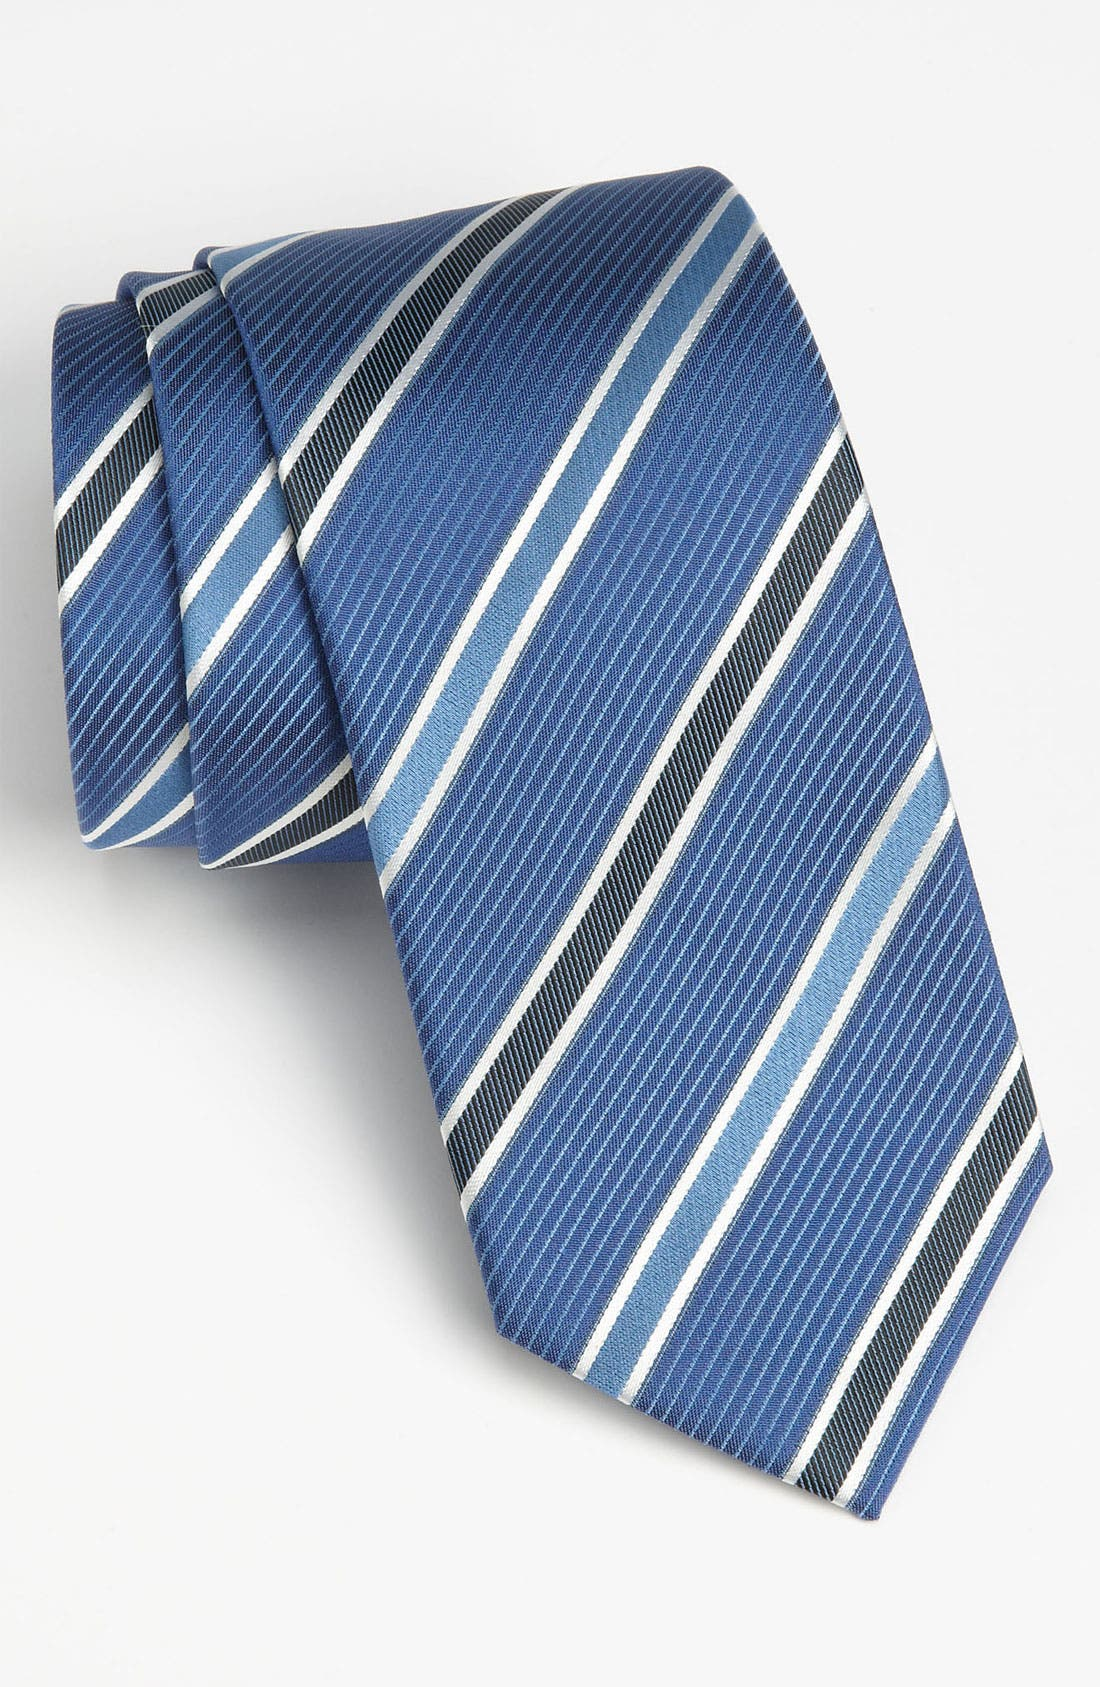 HUGO BOSS Woven Silk Tie,                             Main thumbnail 2, color,